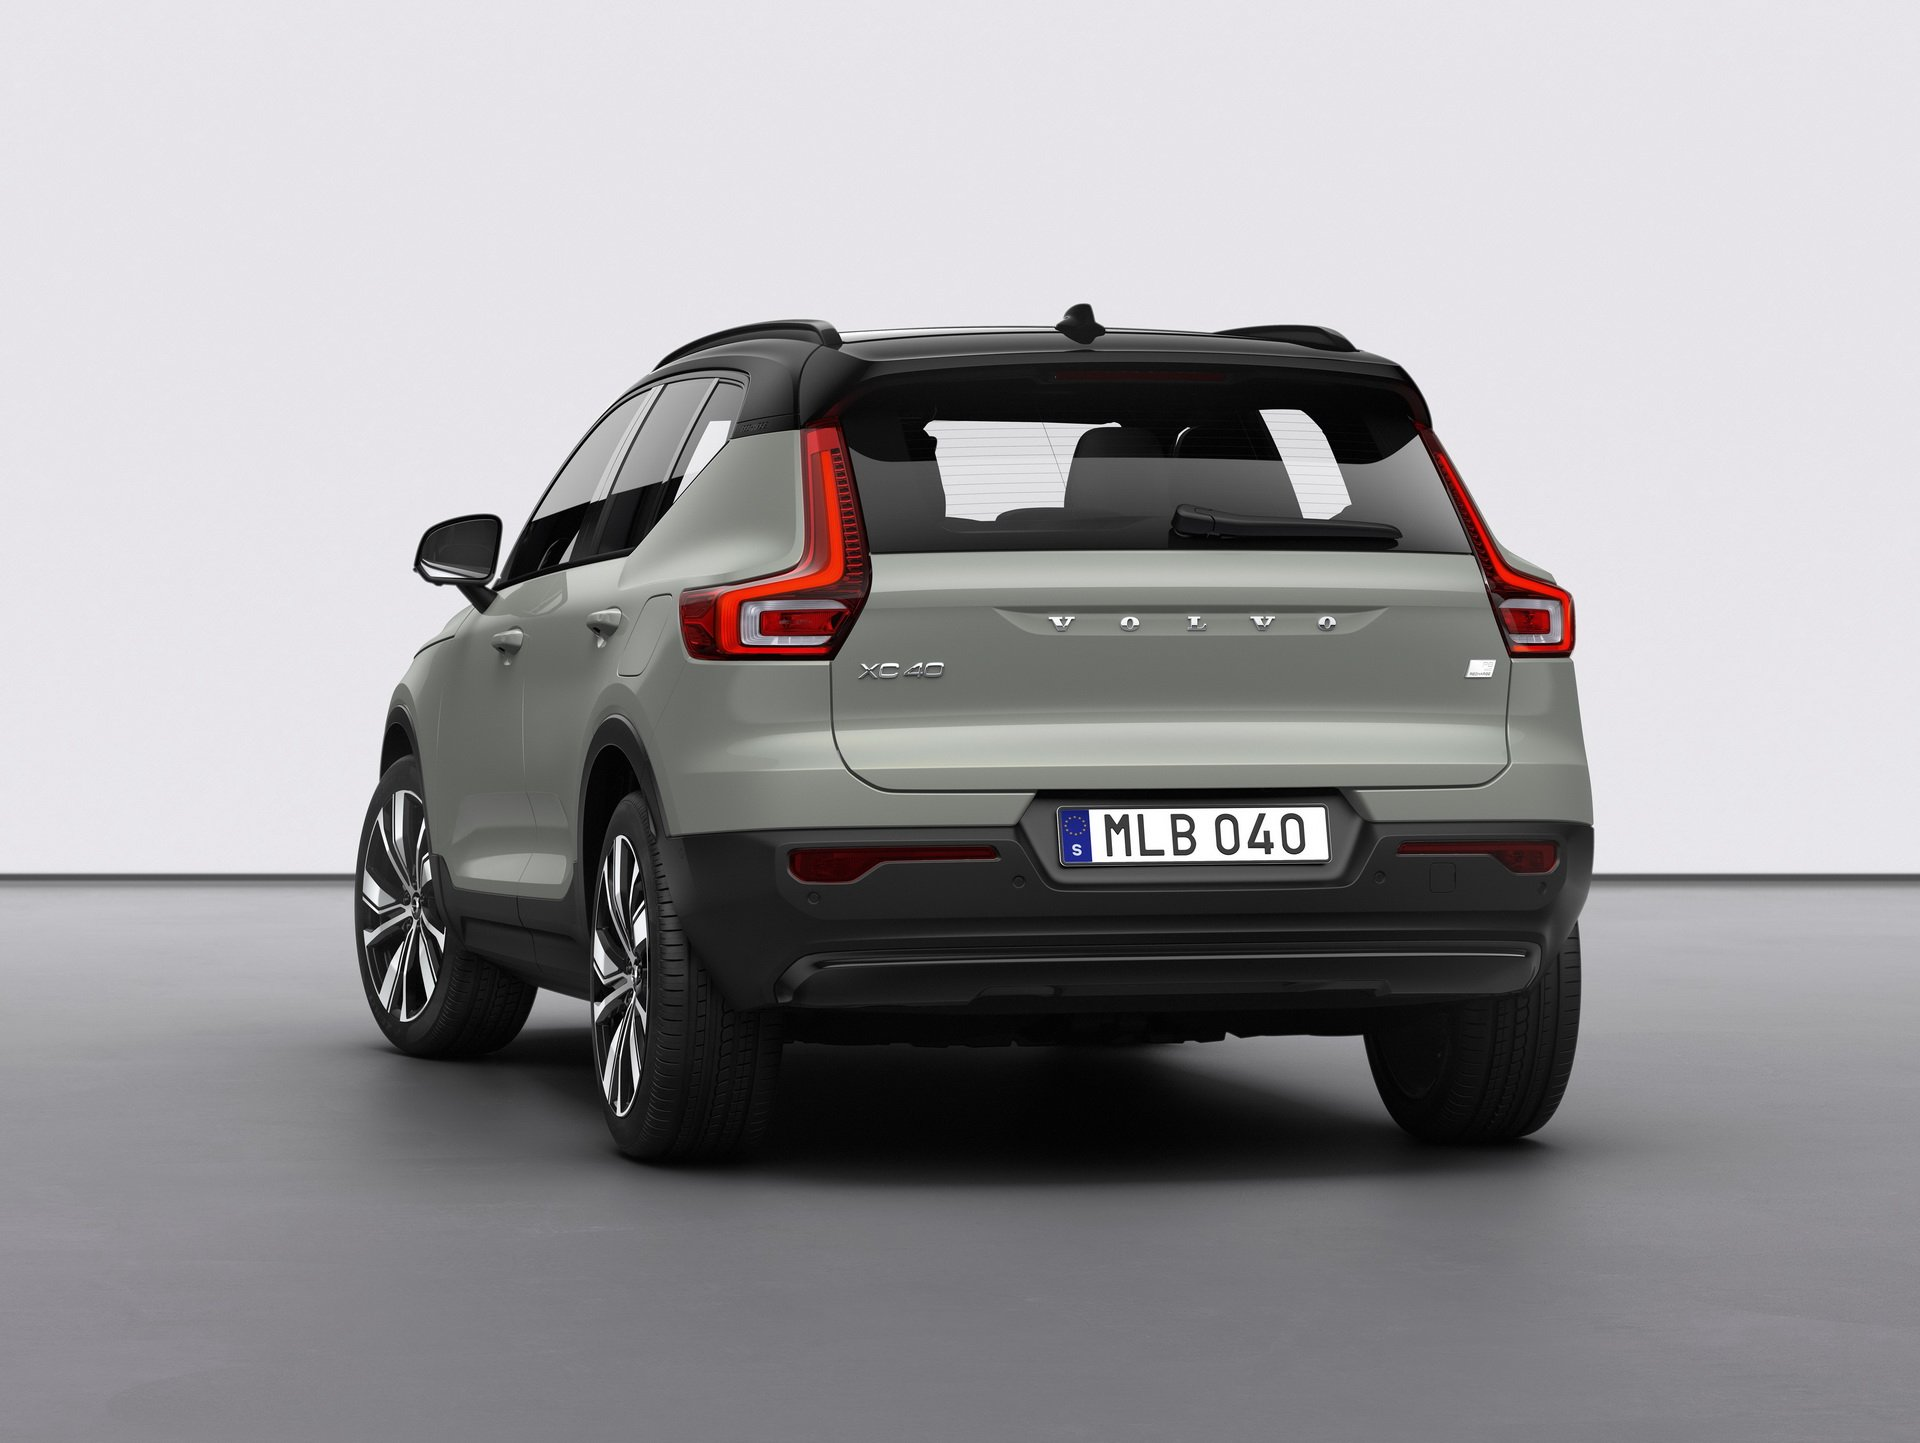 2021 volvo xc40 recharge p8 pre-orders are go, production